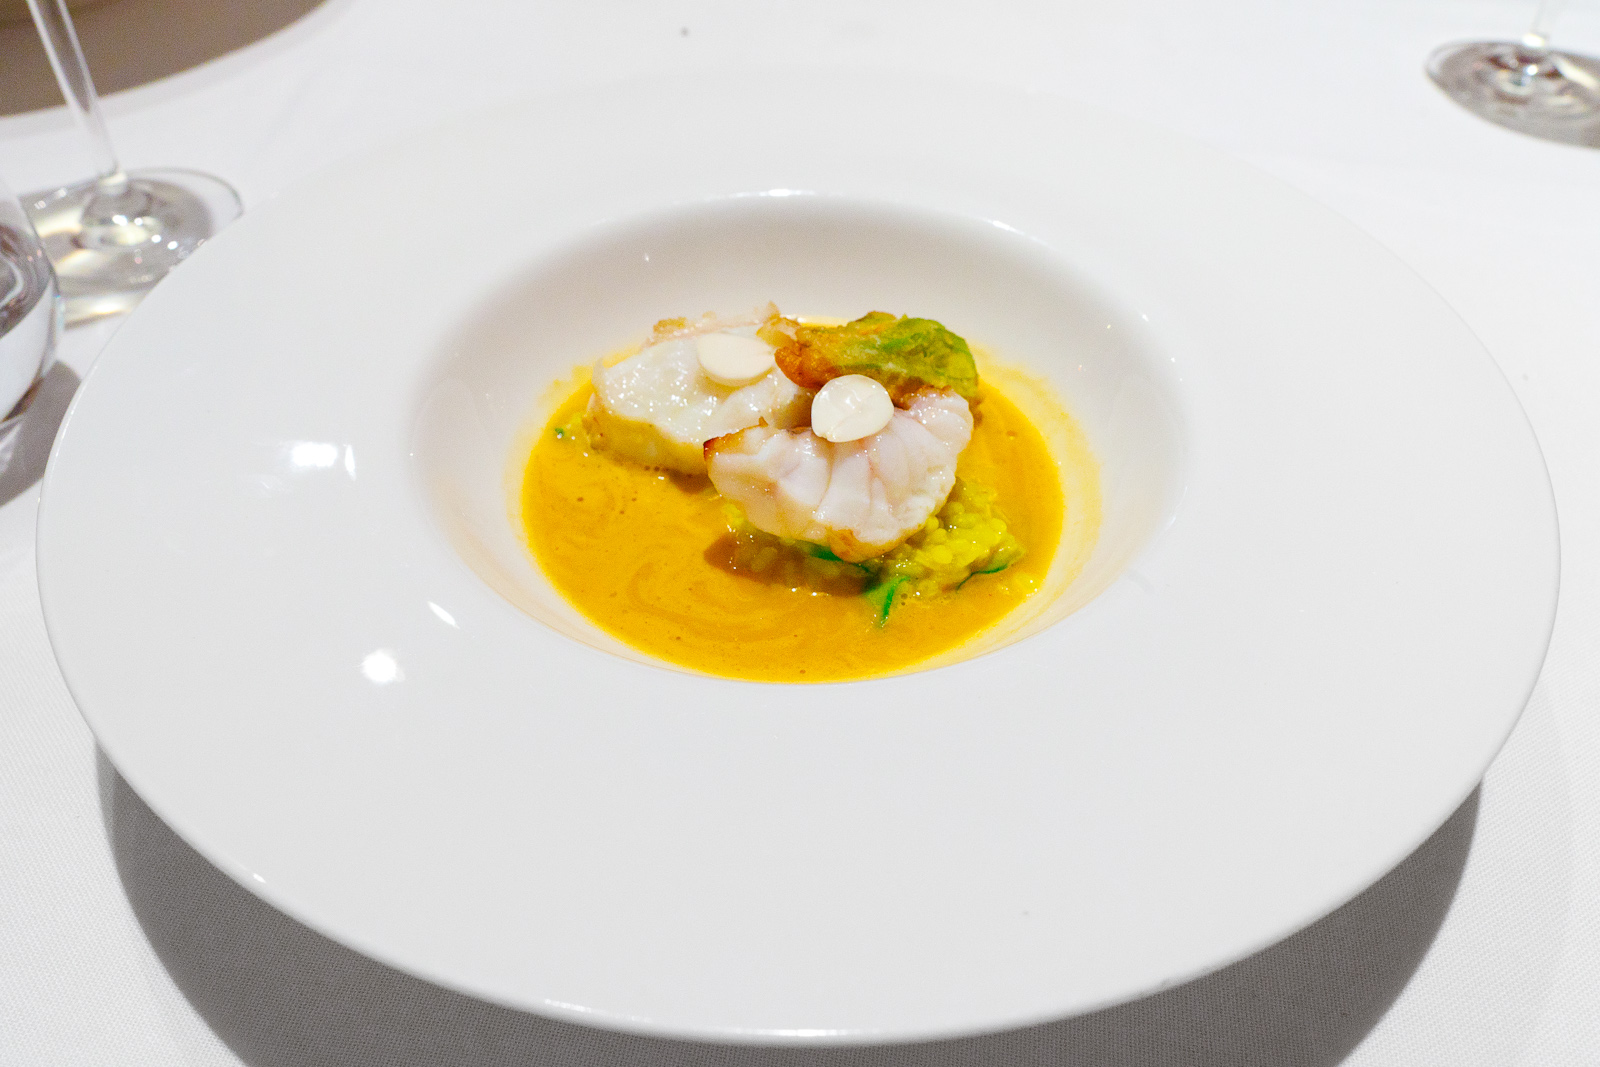 Hisop, Spain - Monkfish with saffron rice and zucchini flower